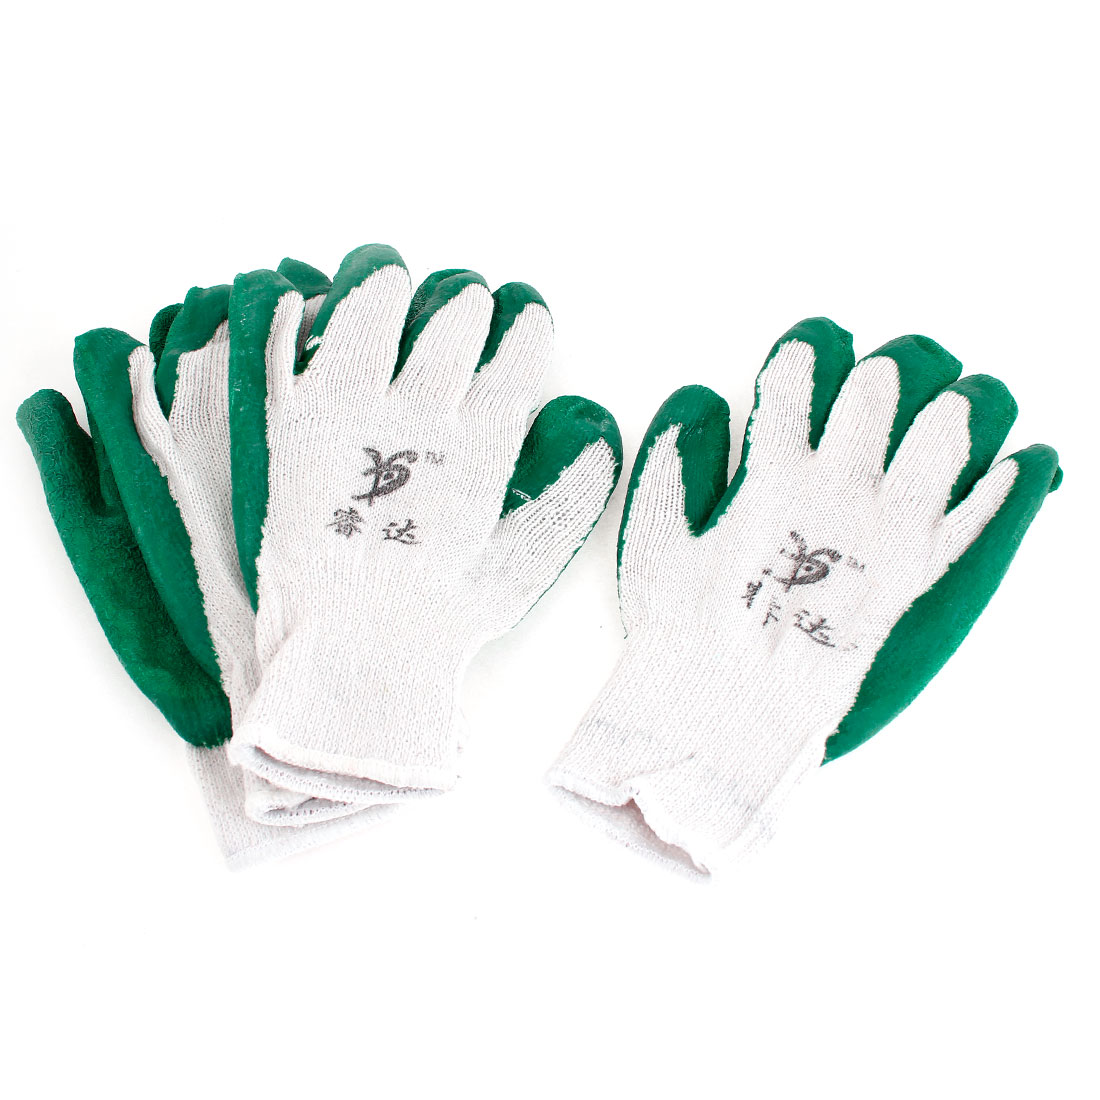 2 Pair Green Latex Rubber Coated Plam Protective Working Labor Gloves White